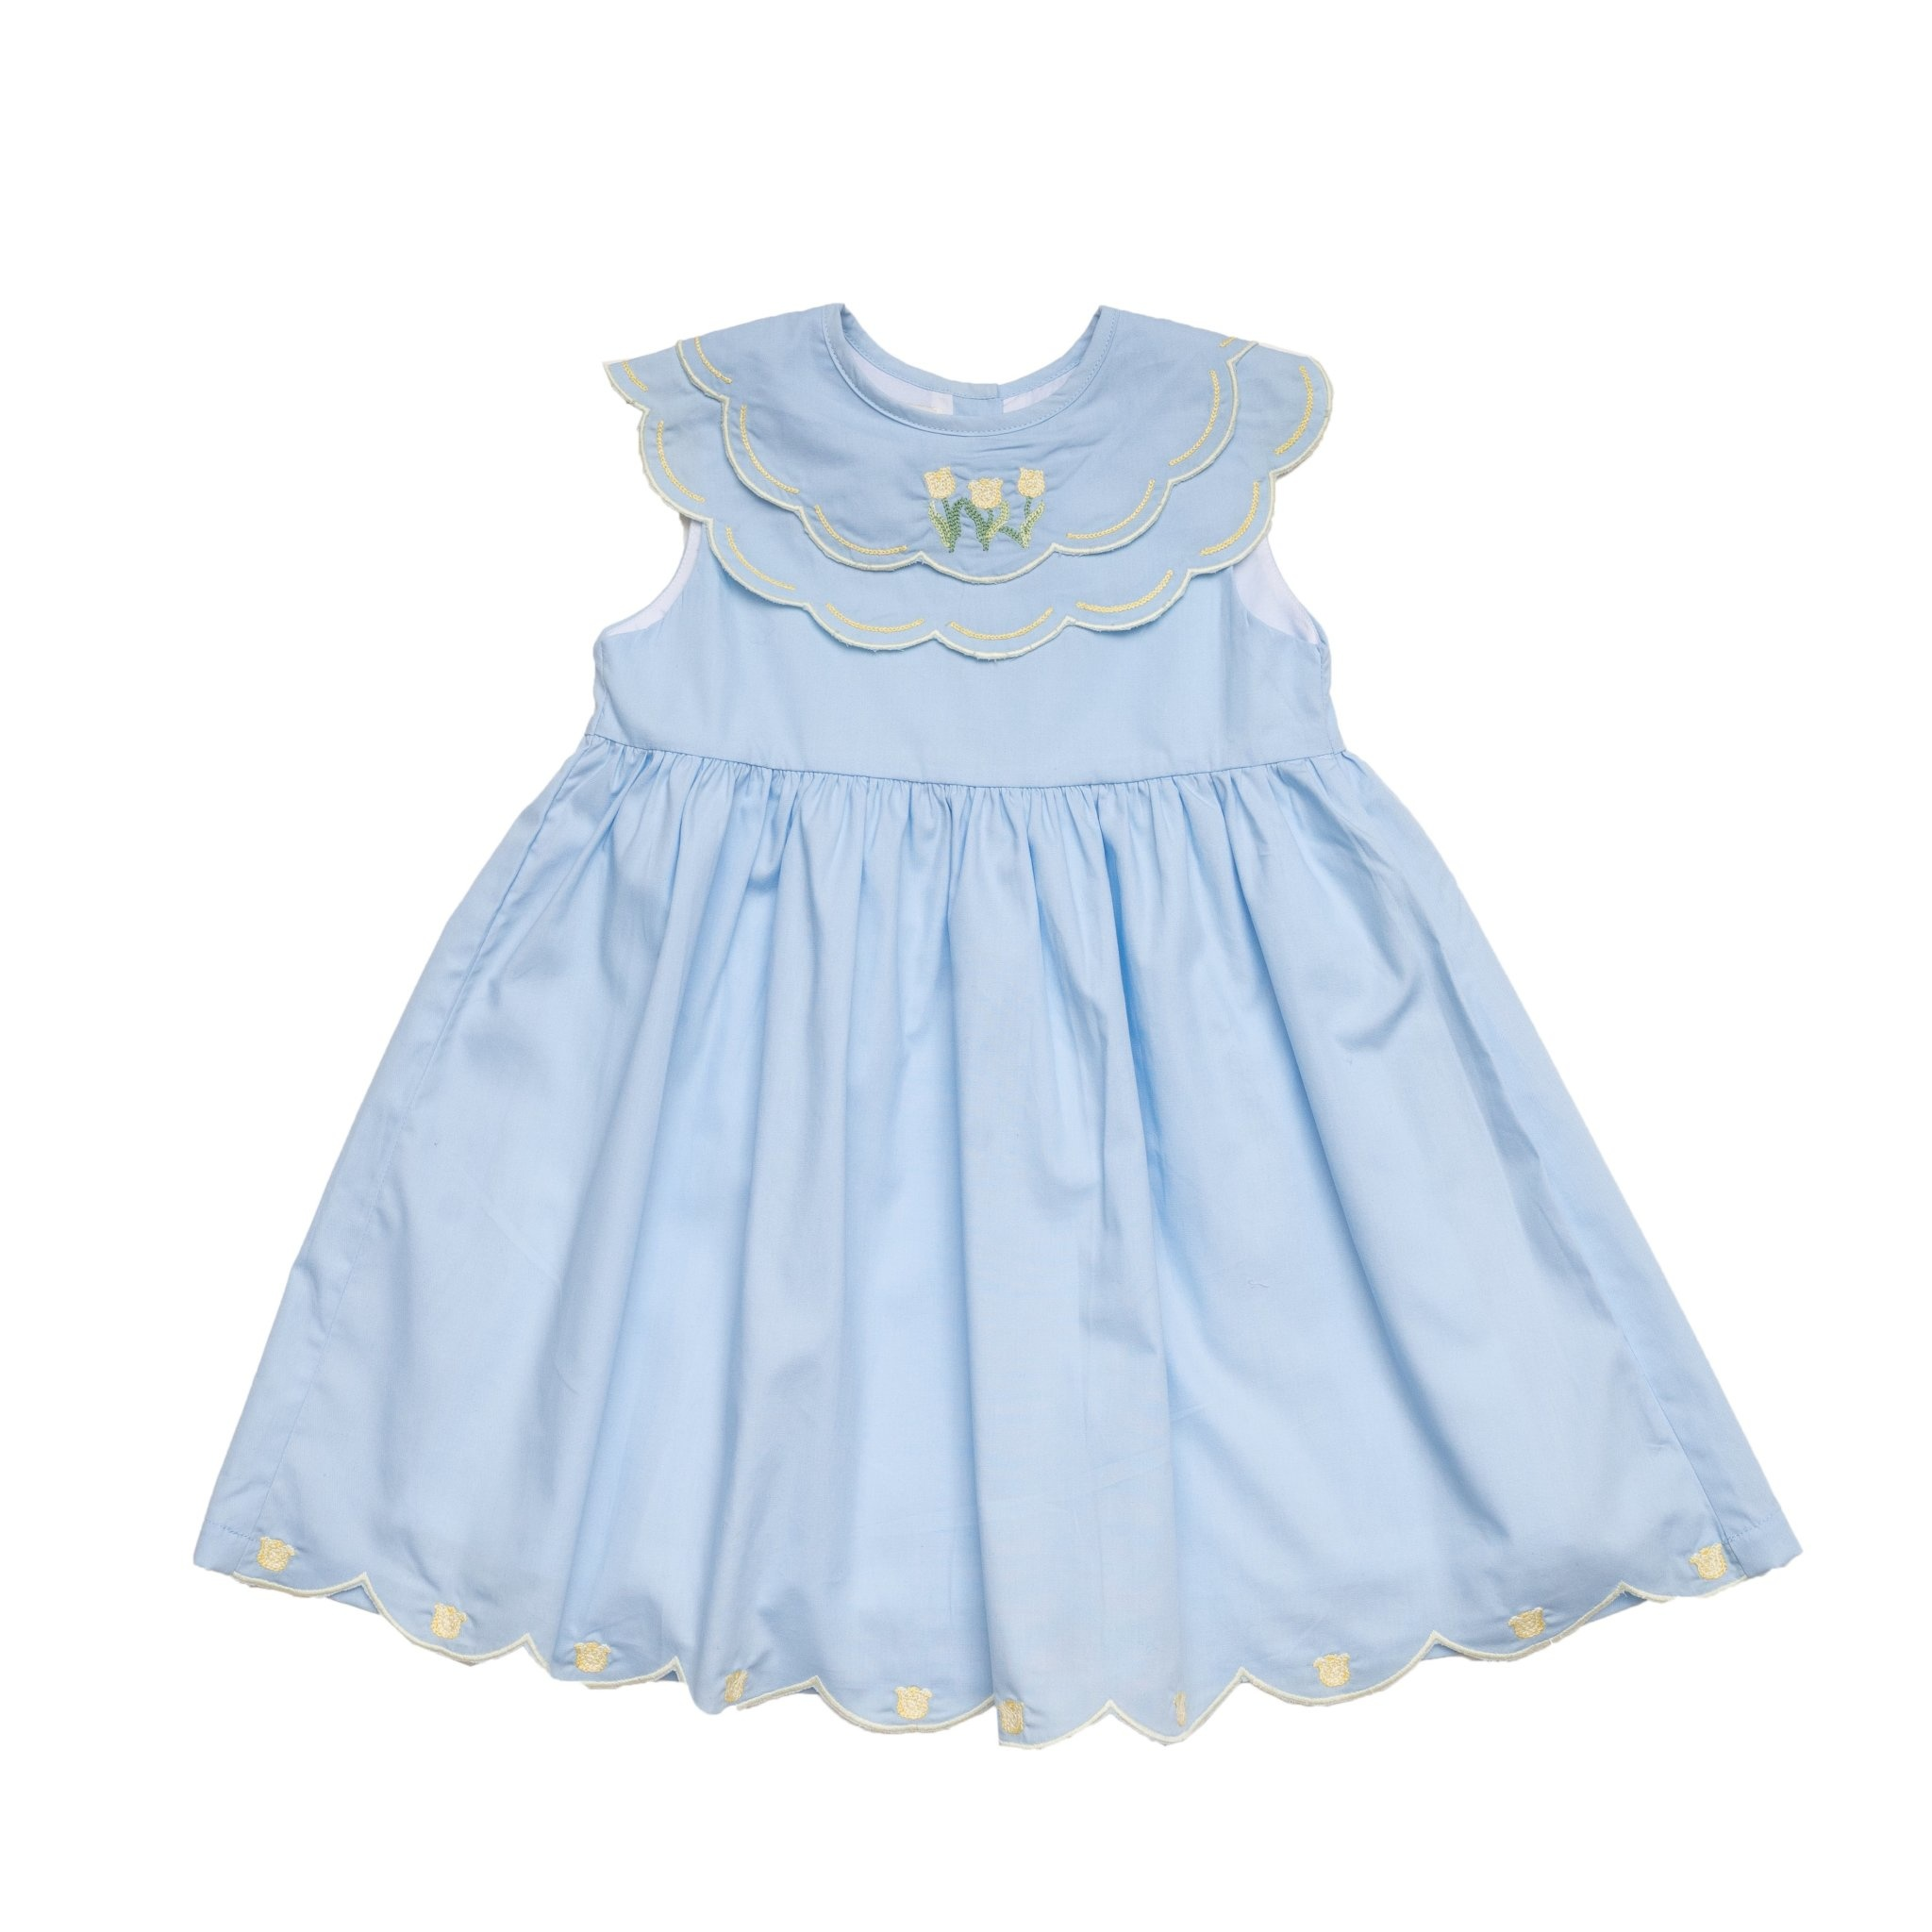 The Oaks Apparel Olivia Blue Tulip Dress